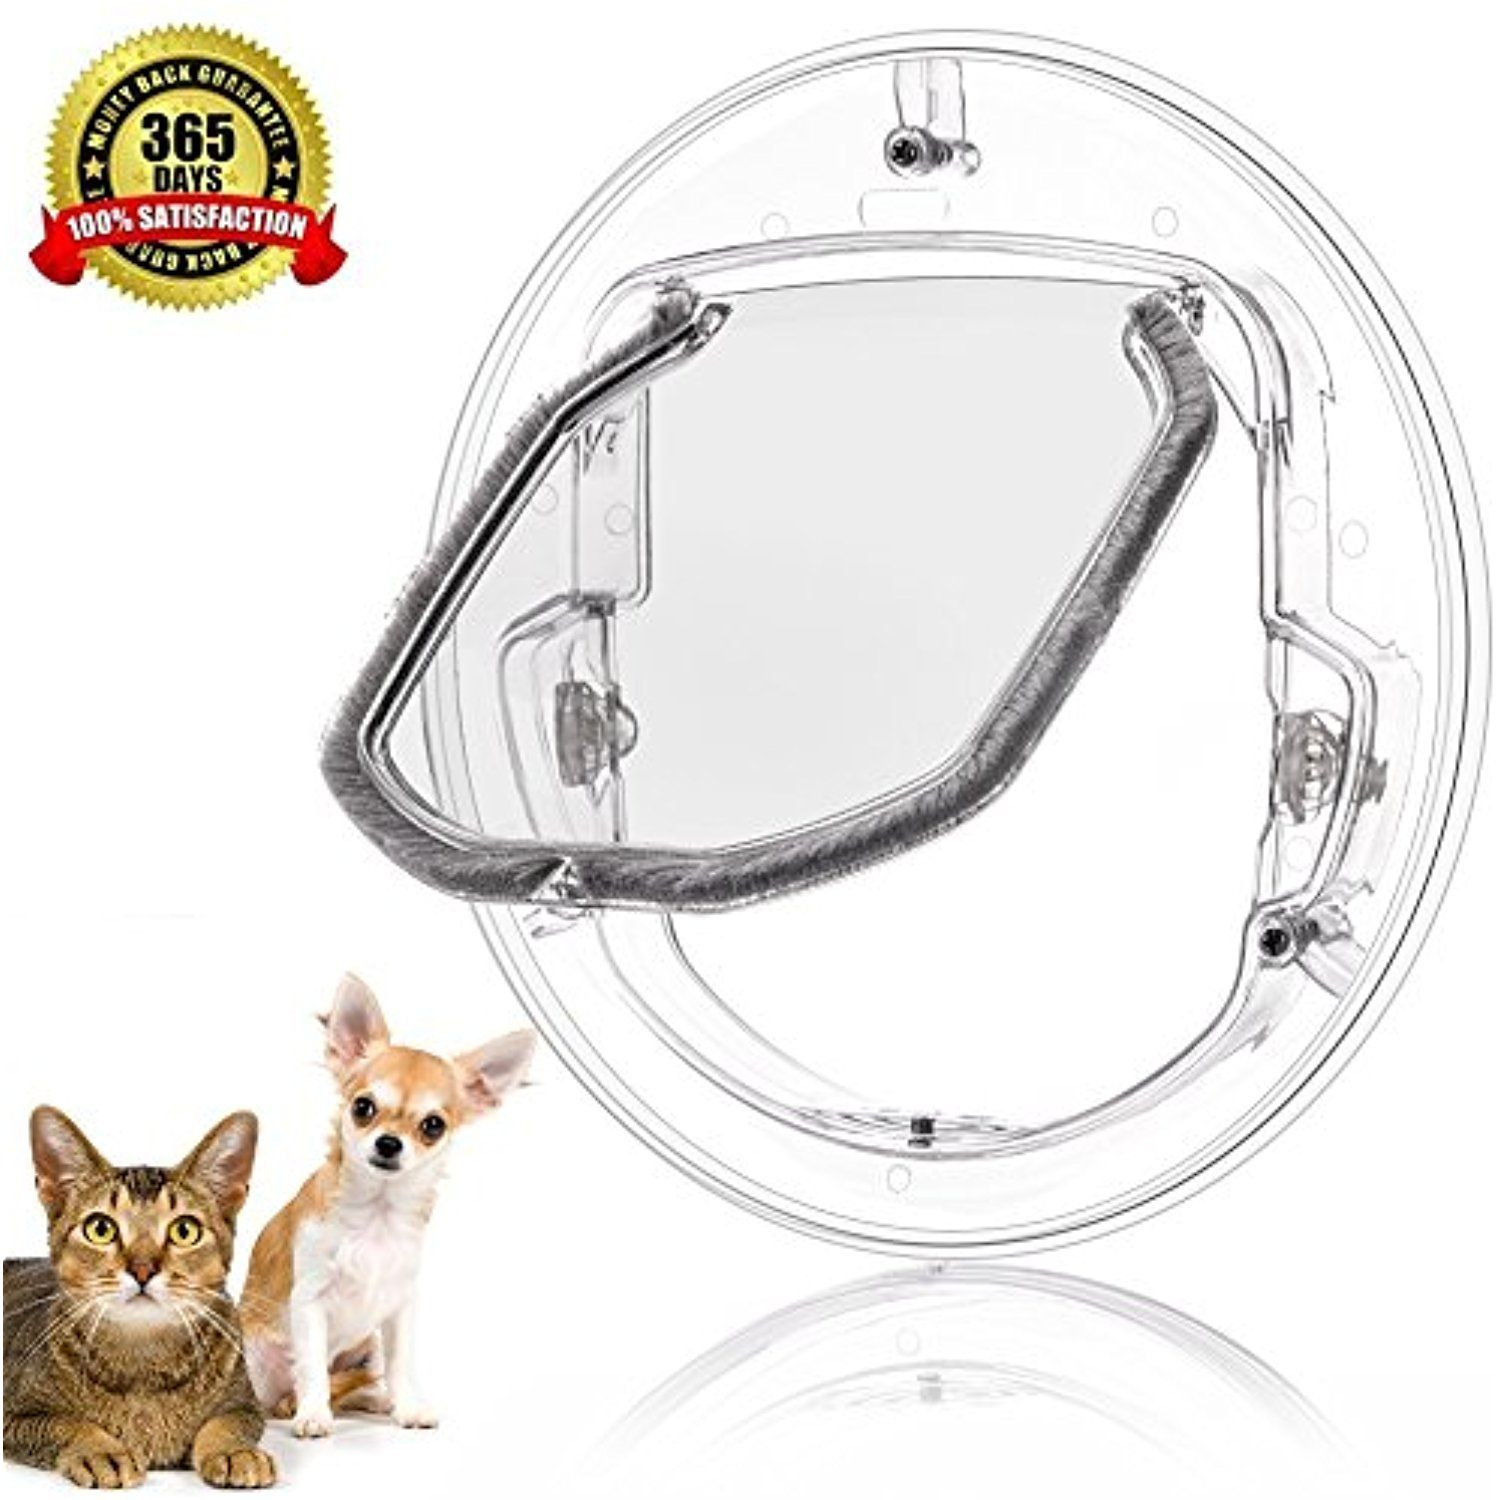 Exceptional Pet Door For Cats And Small Dogs With 4 Ways Lock,Round Clear Cat Flap With  Door Liner Kit Best Fits For Screen Window / Sliding Glass Door / Glass  Window, ...